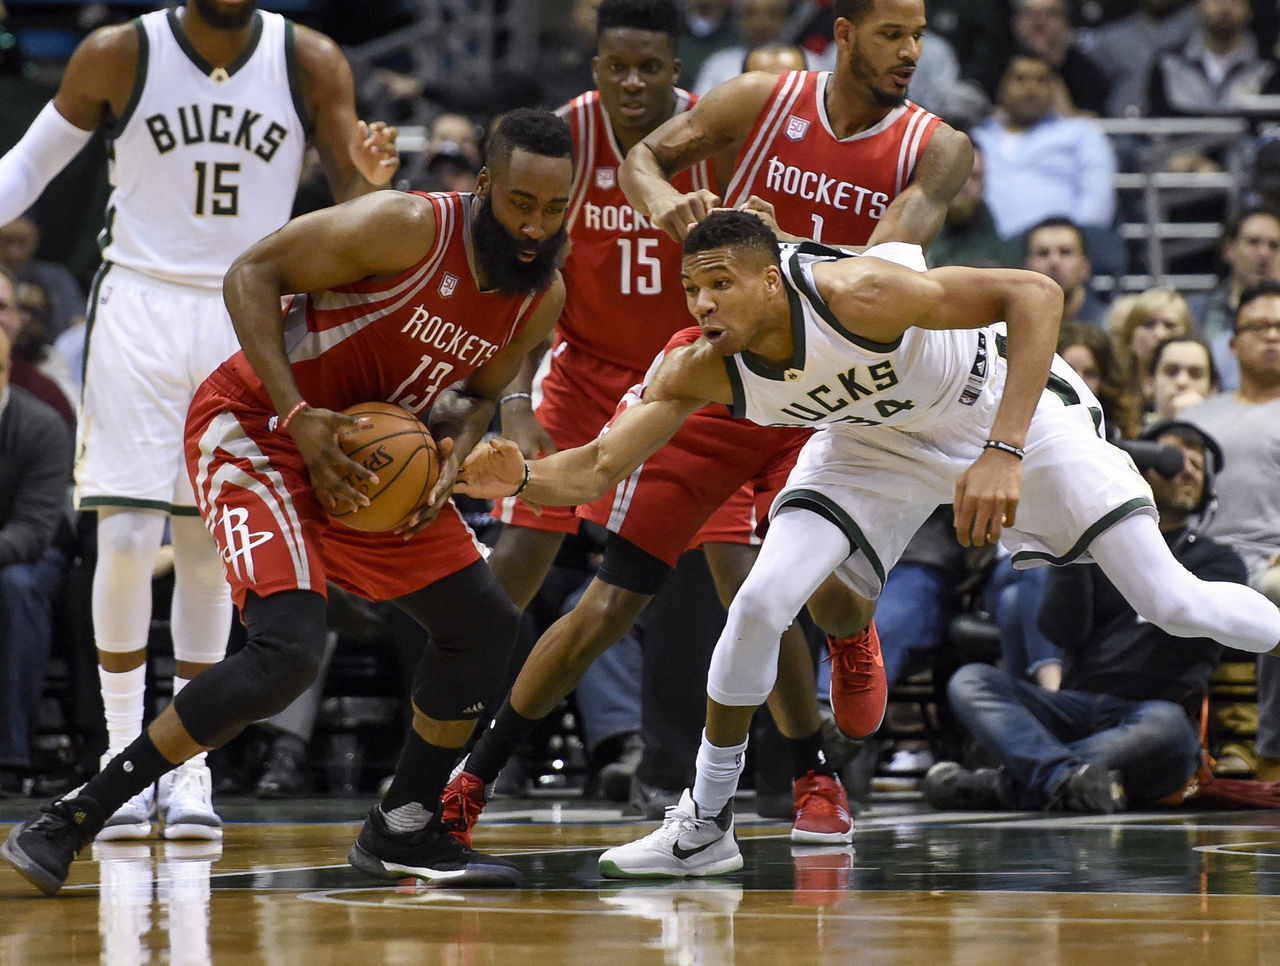 Cropped 2017 01 24t022451z 1720180152 nocid rtrmadp 3 nba houston rockets at milwaukee bucks